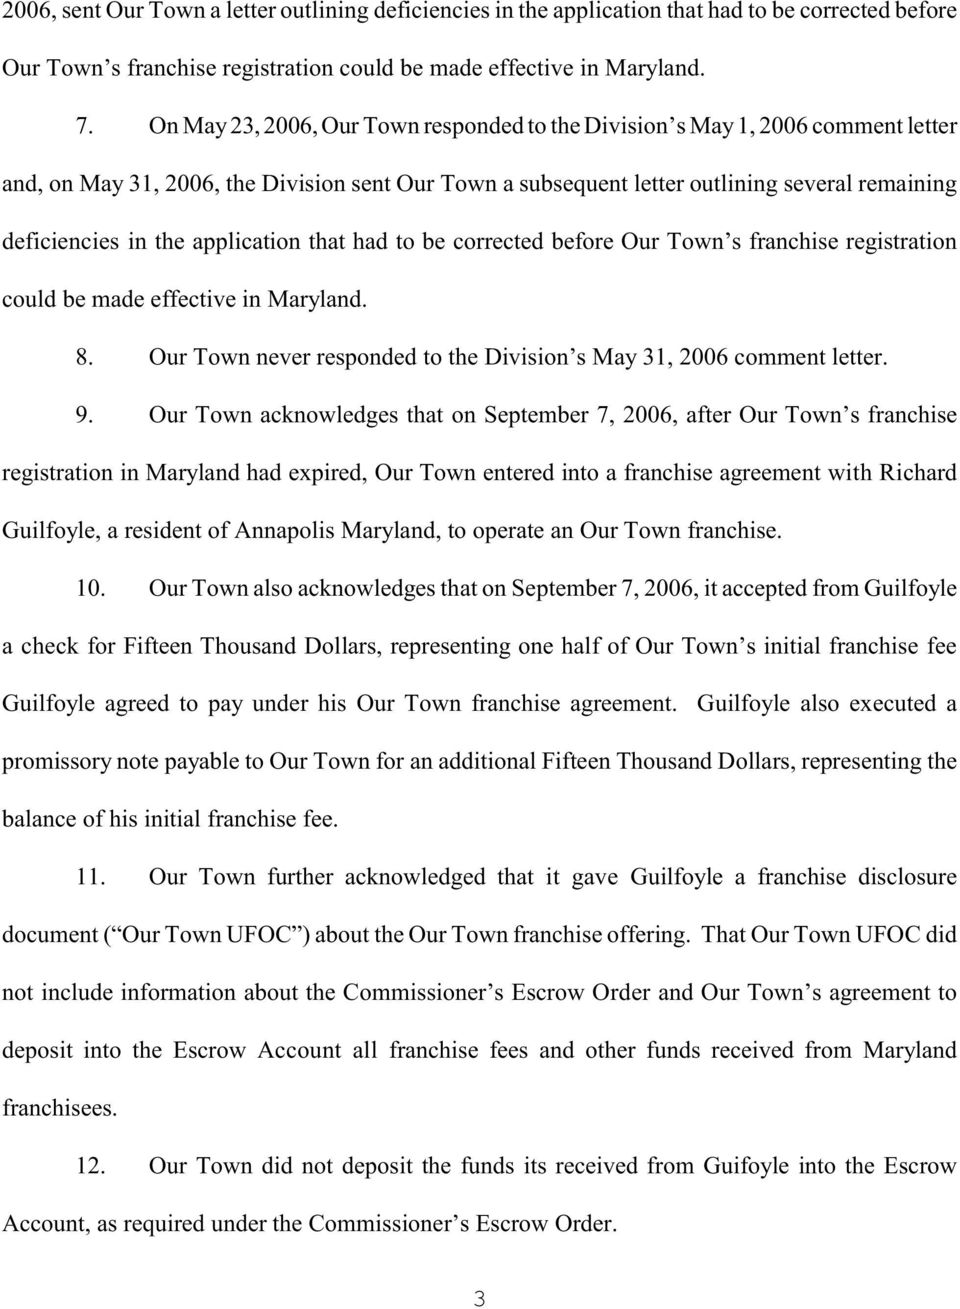 application that had to be corrected before Our Town s franchise registration could be made effective in Maryland. 8. Our Town never responded to the Division s May 31, 2006 comment letter. 9.